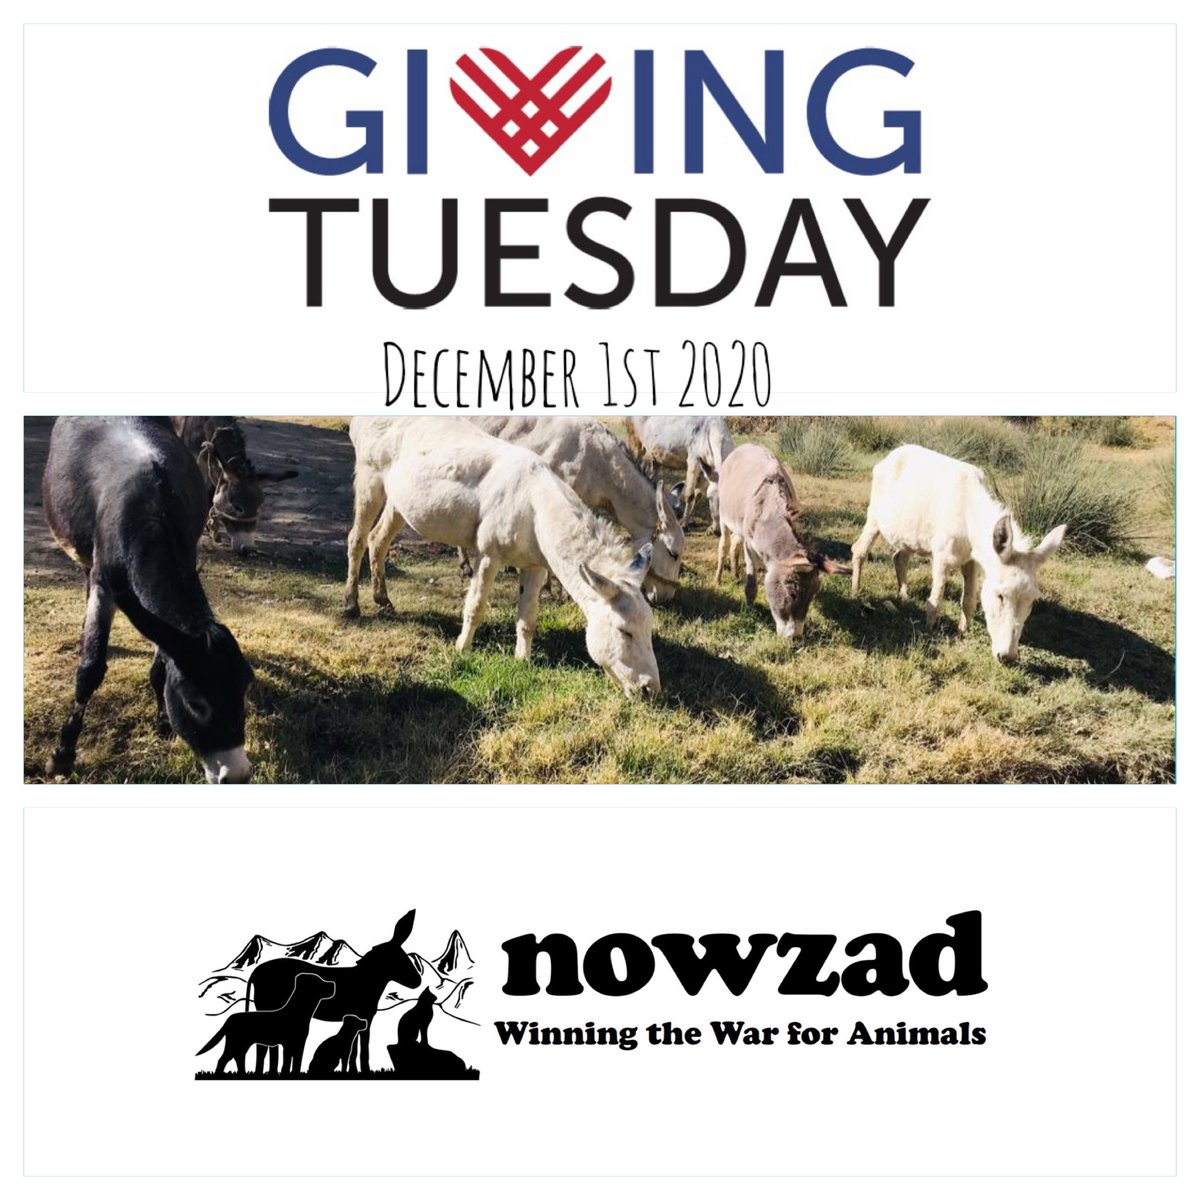 Tomorrow is #GivingTuesday and our new appeal goes LIVE at 8am ET 💫  GivingTuesday is a global day of giving ~ so WATCH THIS SPACE to find out how YOU can maximise your donation and get it matched to help the animals of Afghanistan even more! 👀  Thank you 🙏🏼